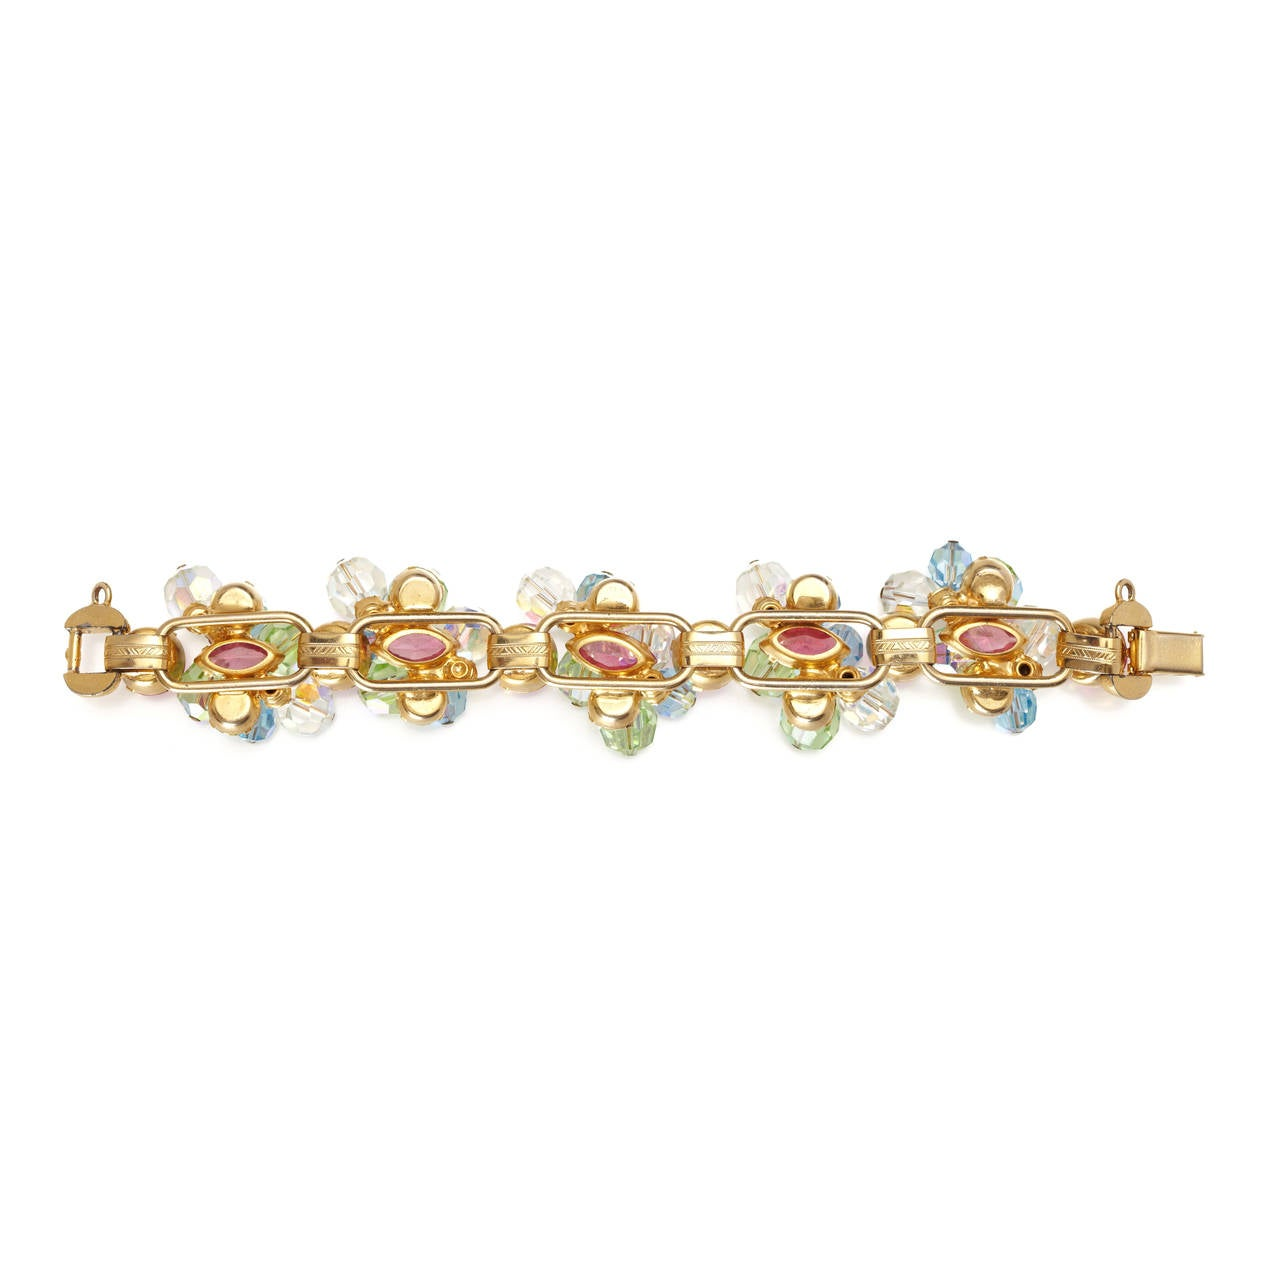 Vintage Juliana Pastel Bracelet In Excellent Condition For Sale In London, GB